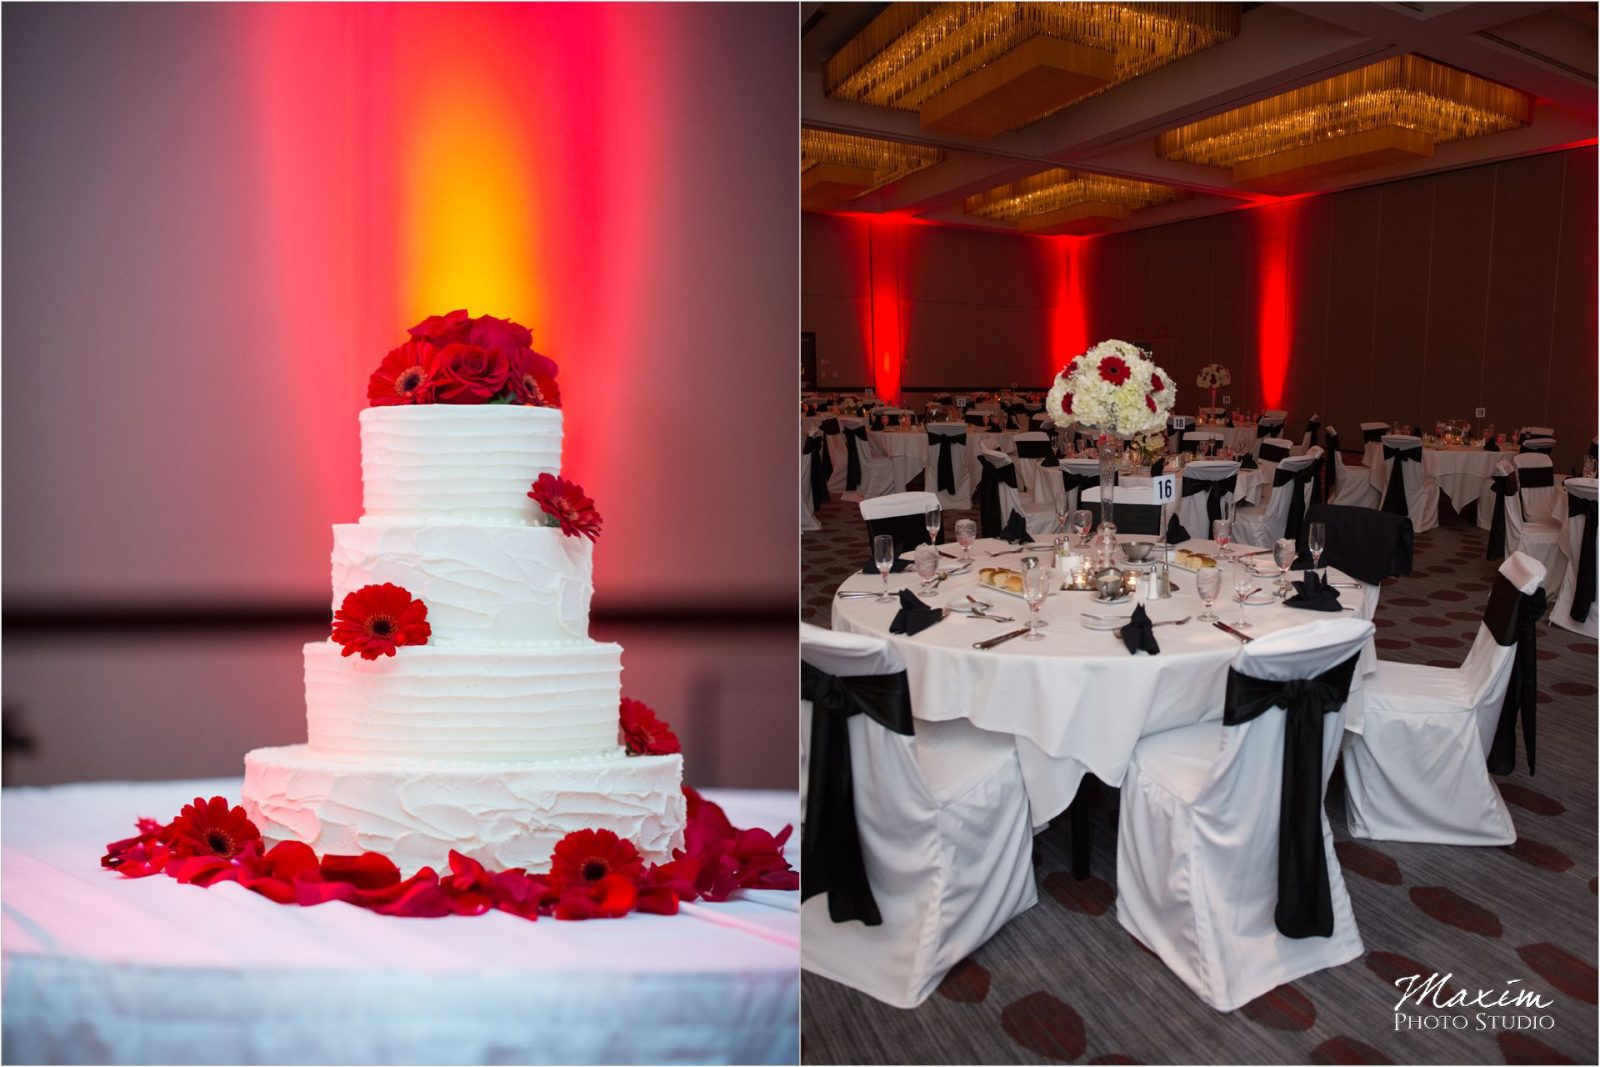 Hyatt Cincinnati Wedding Reception Details